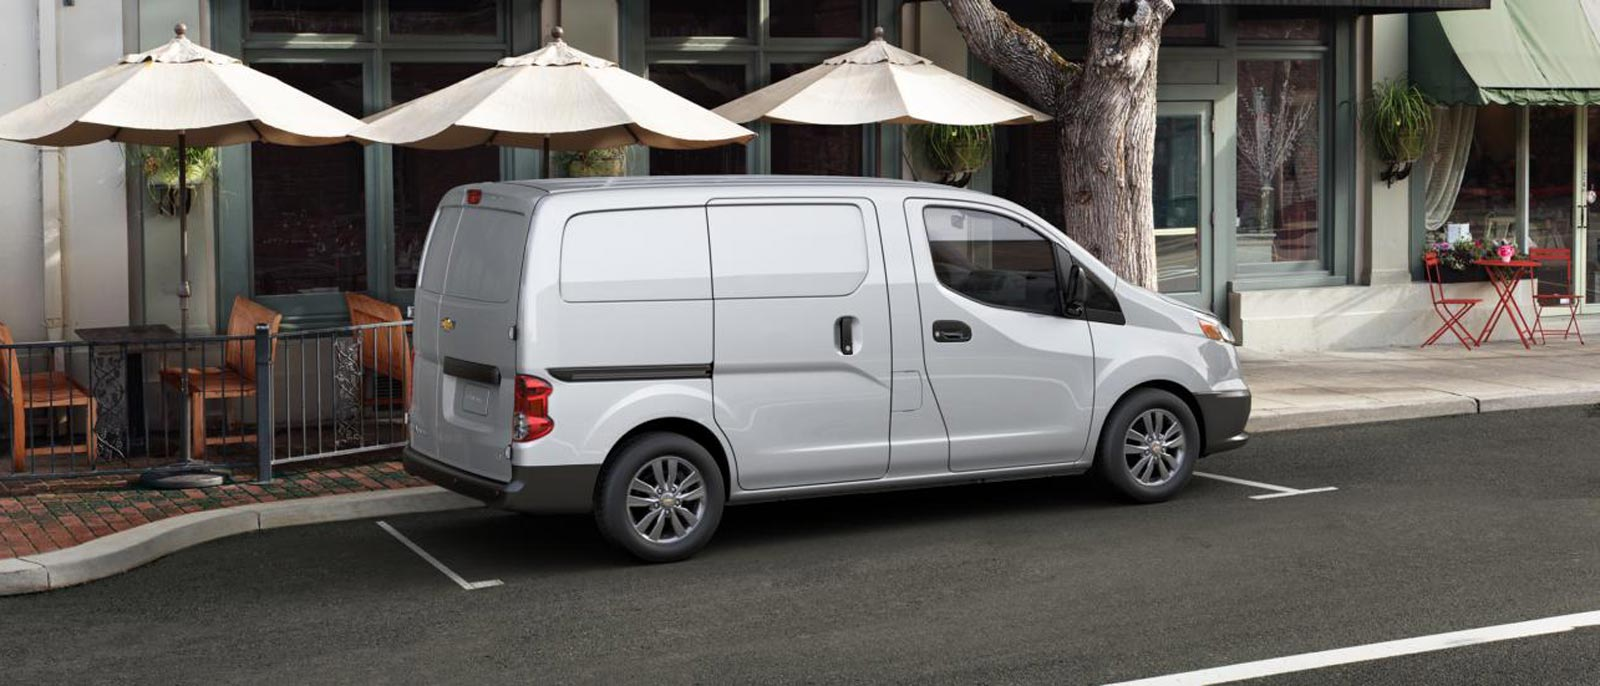 2016 Chevrolet City Express side view